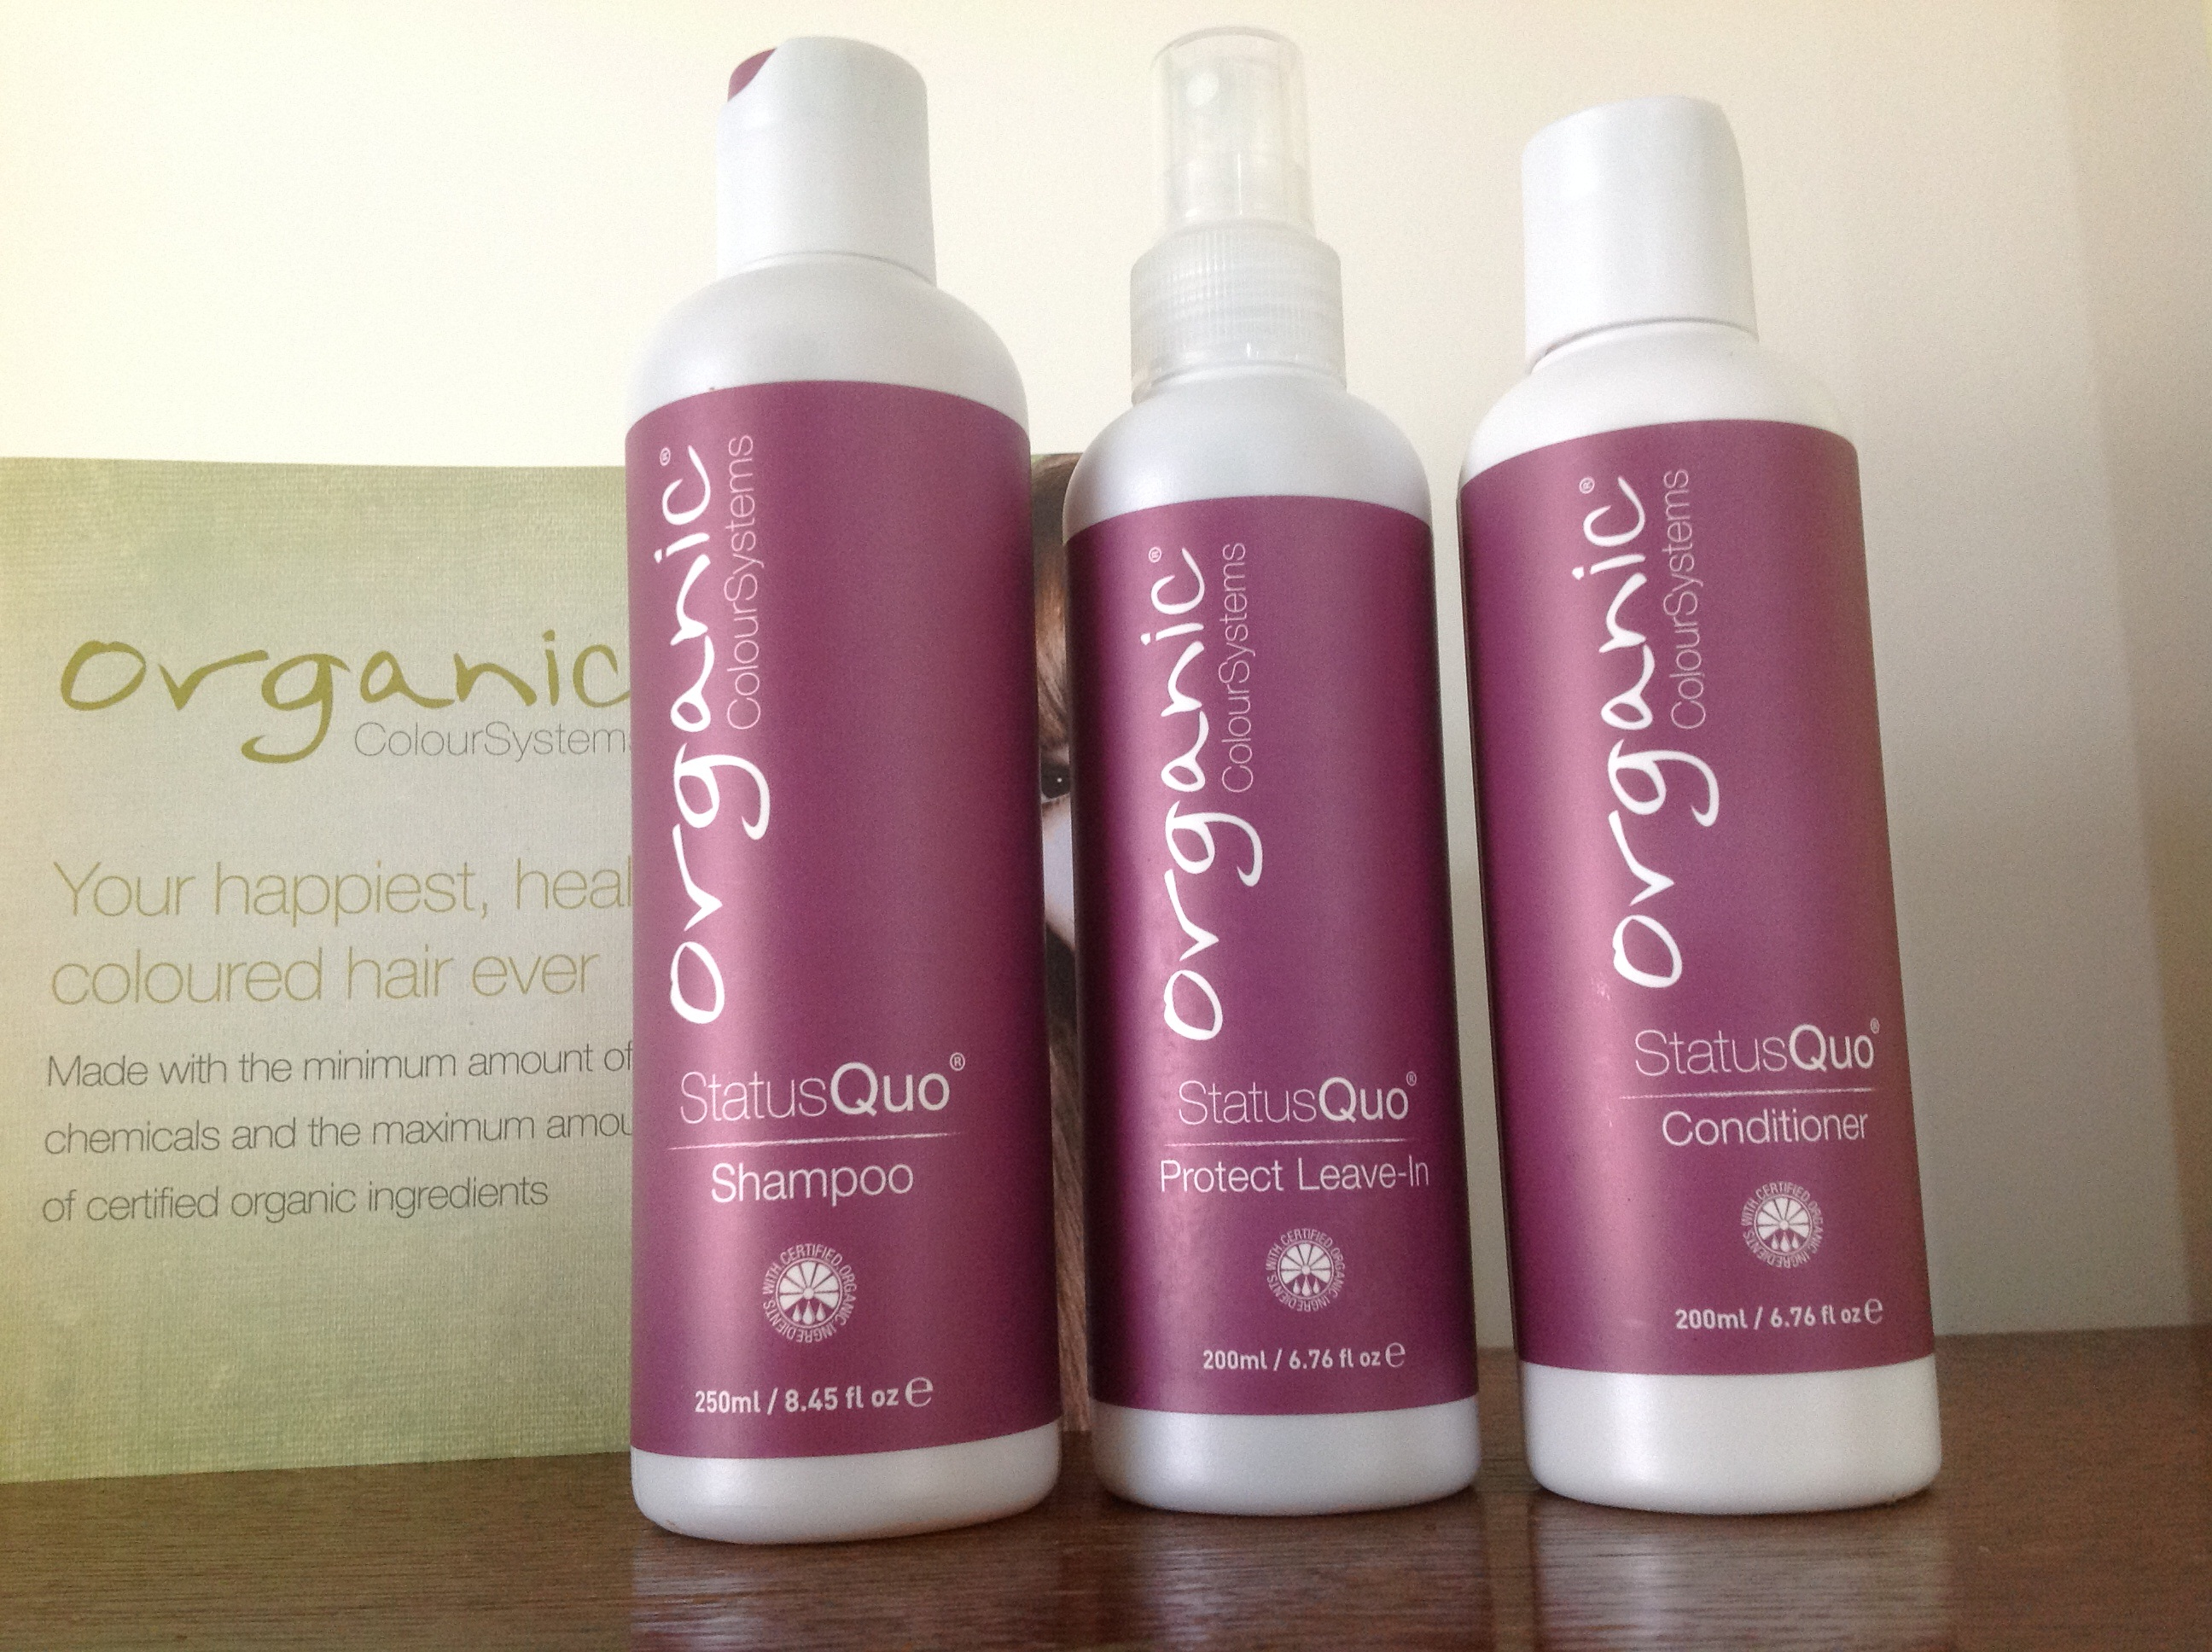 Organic Colour Systems care range